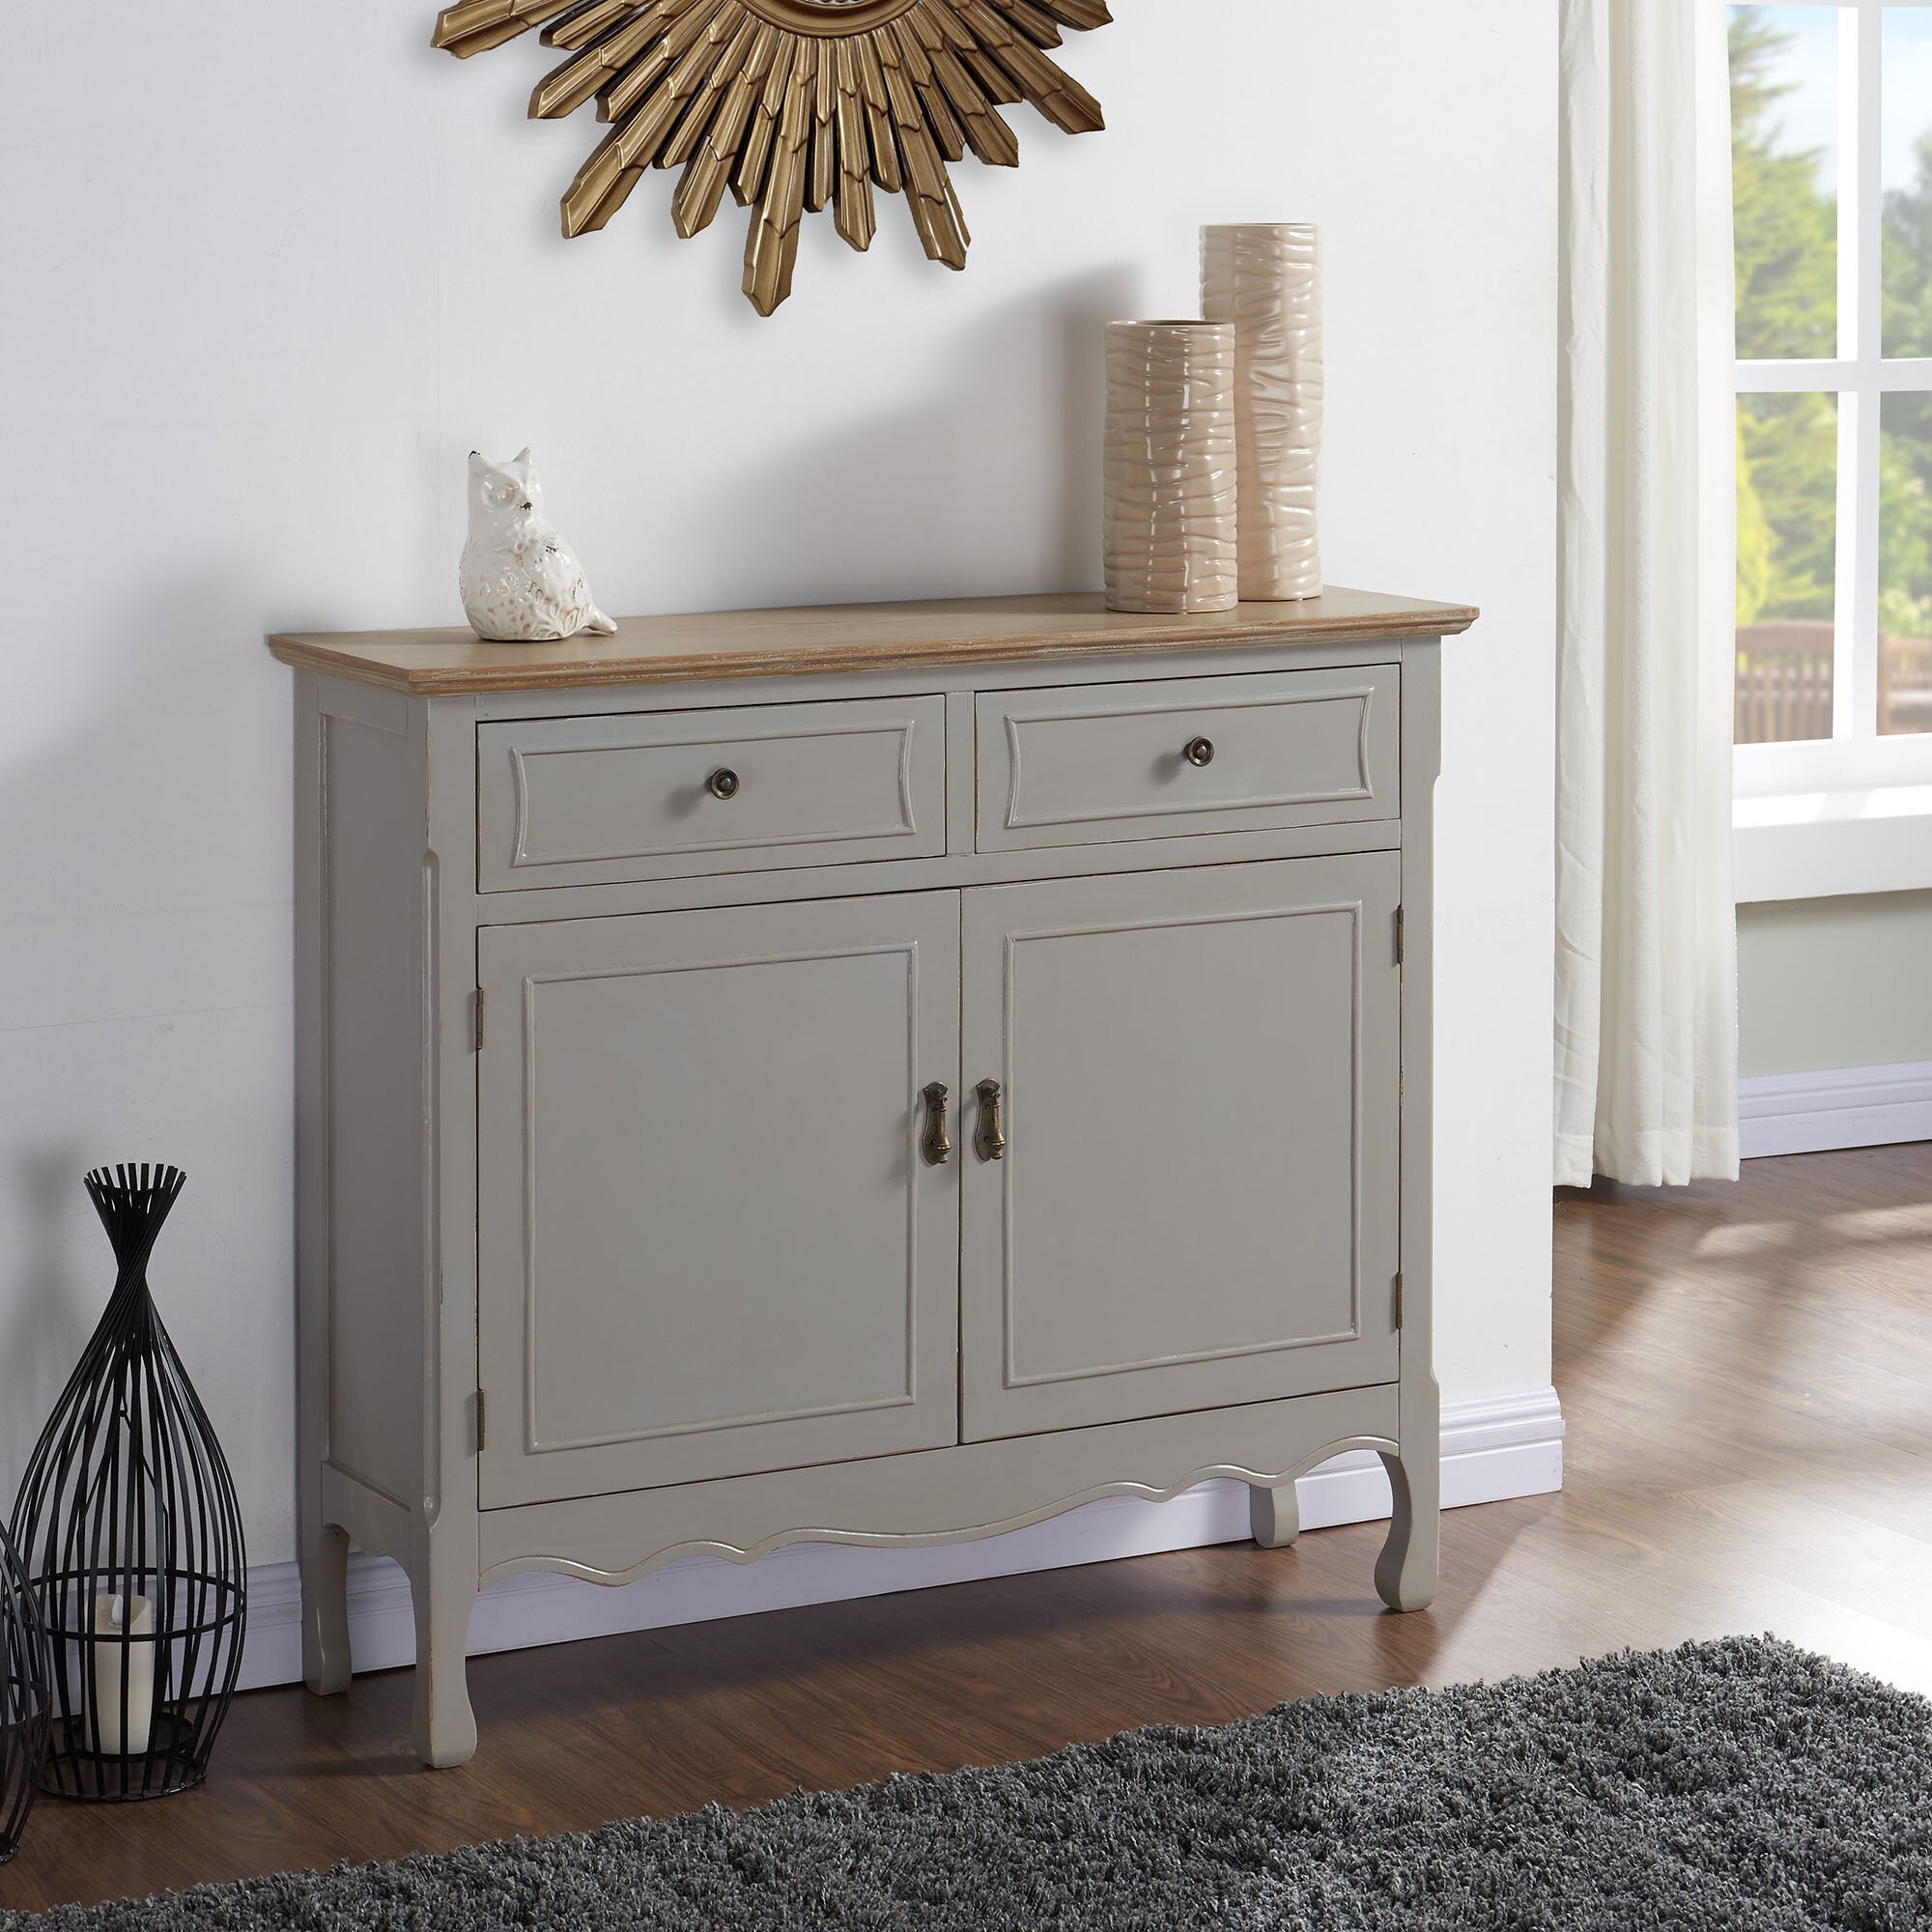 Grey Distressed Kitchen Cabinets: !nspire Cabinet & Reviews